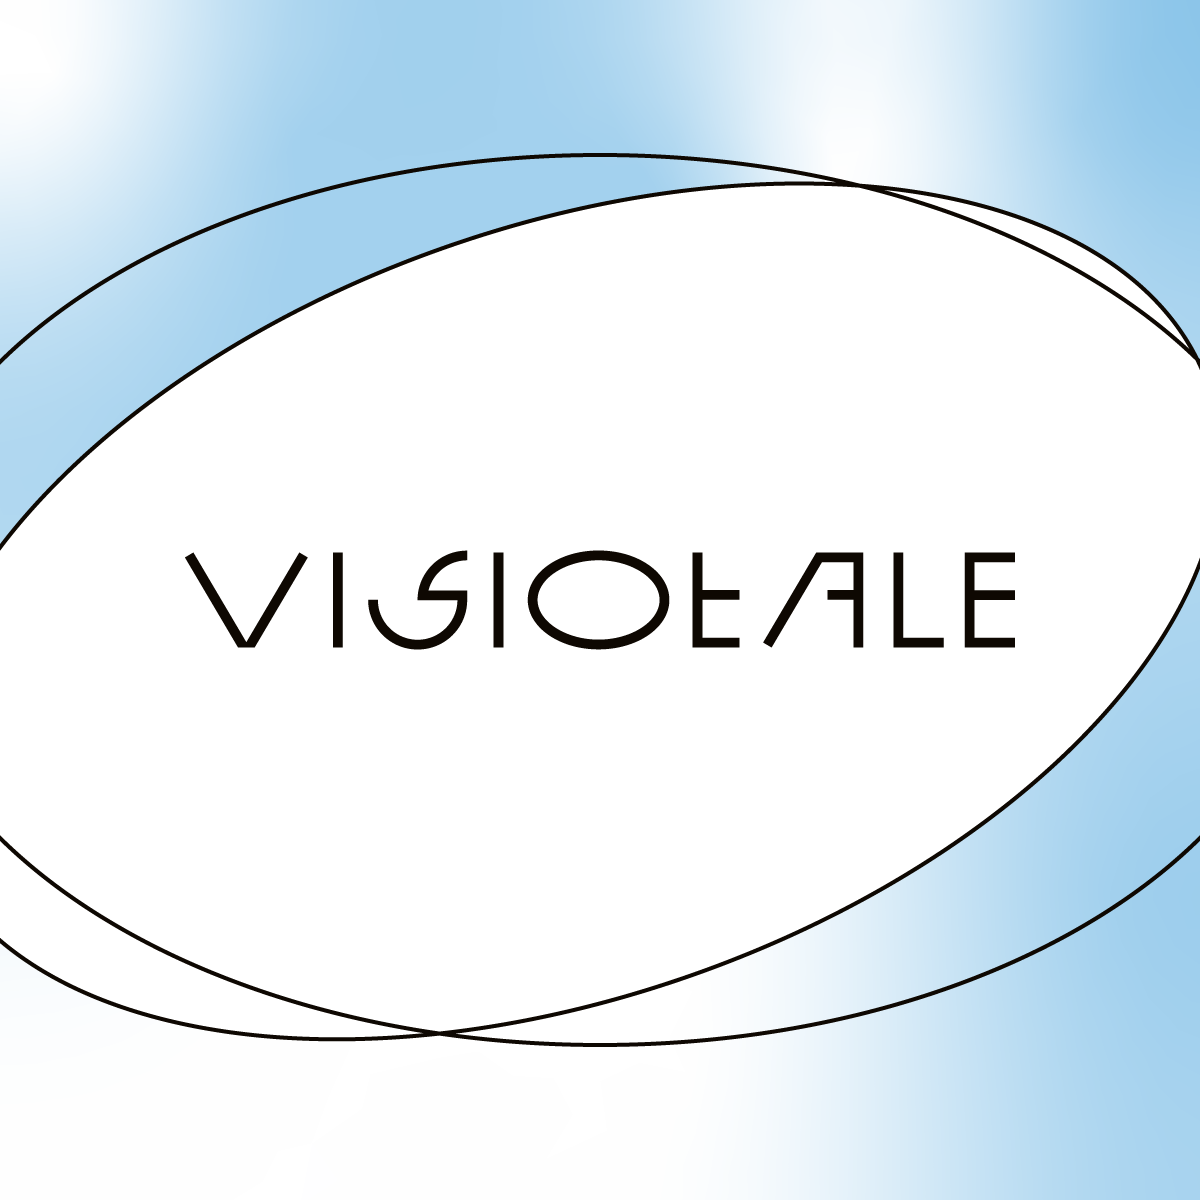 Visiotale reviews, opinions and consumer feedback